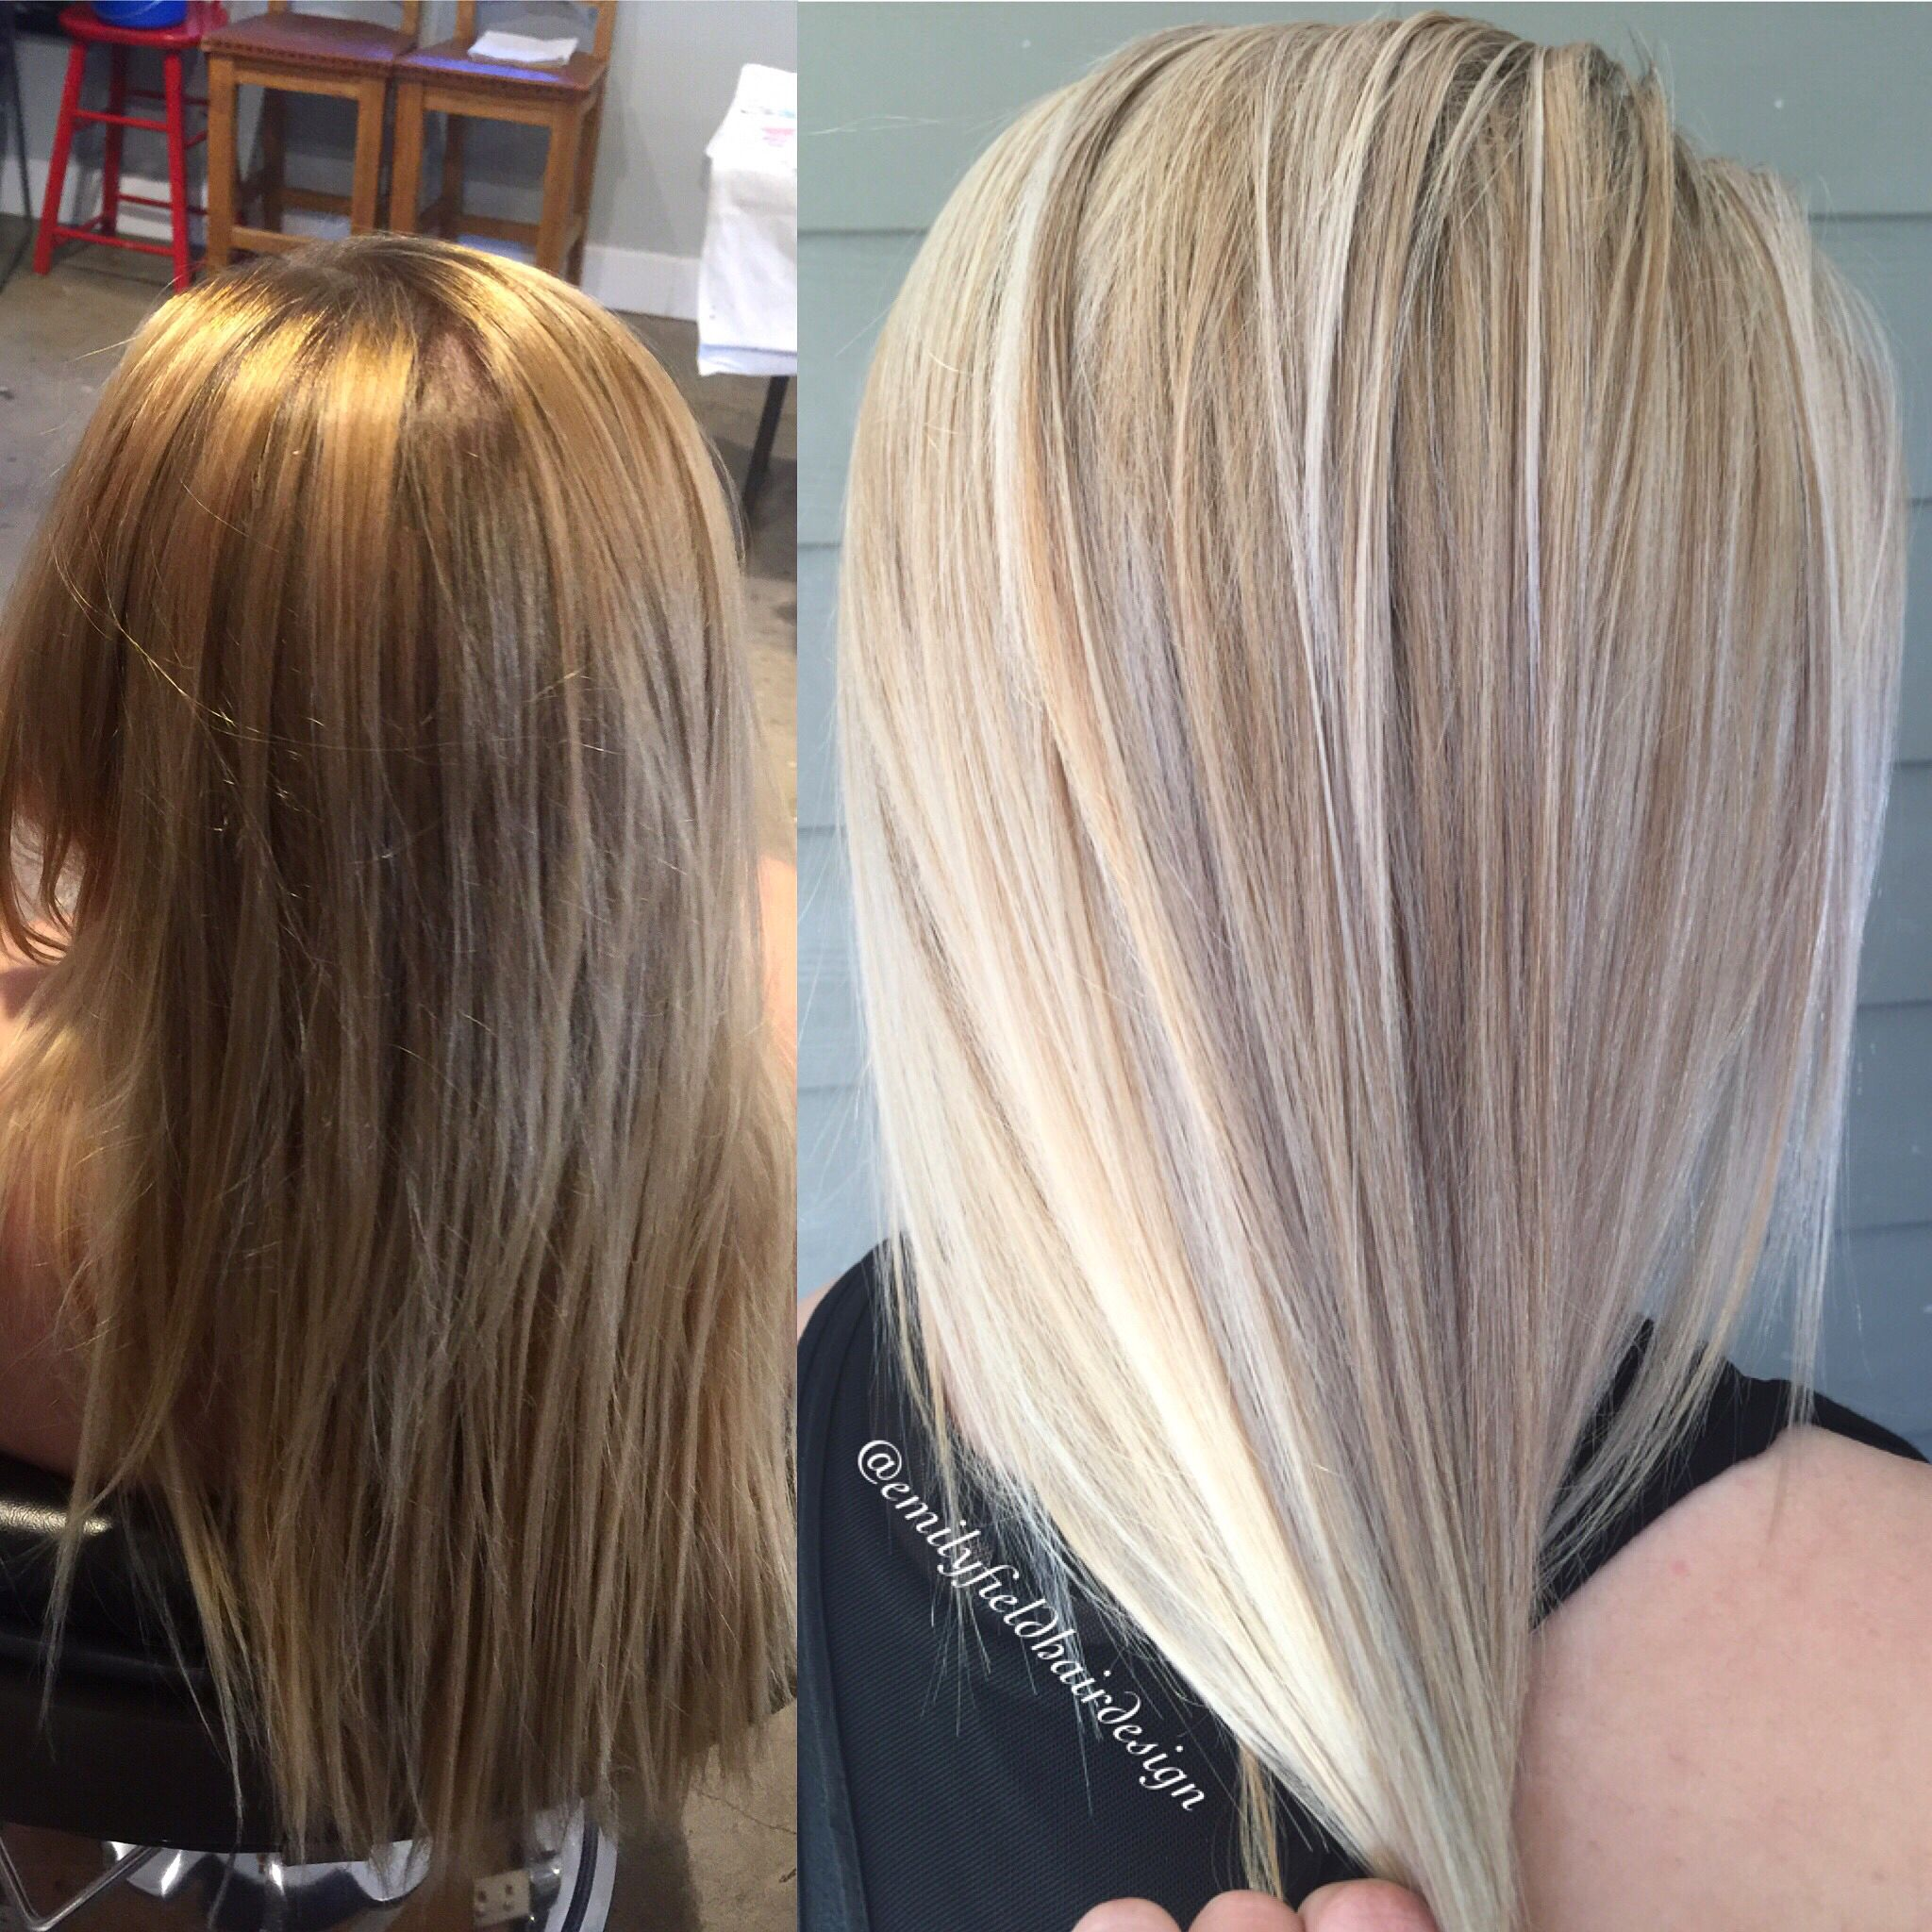 Before and after warm blonde to cool icy platinum blonde hair with